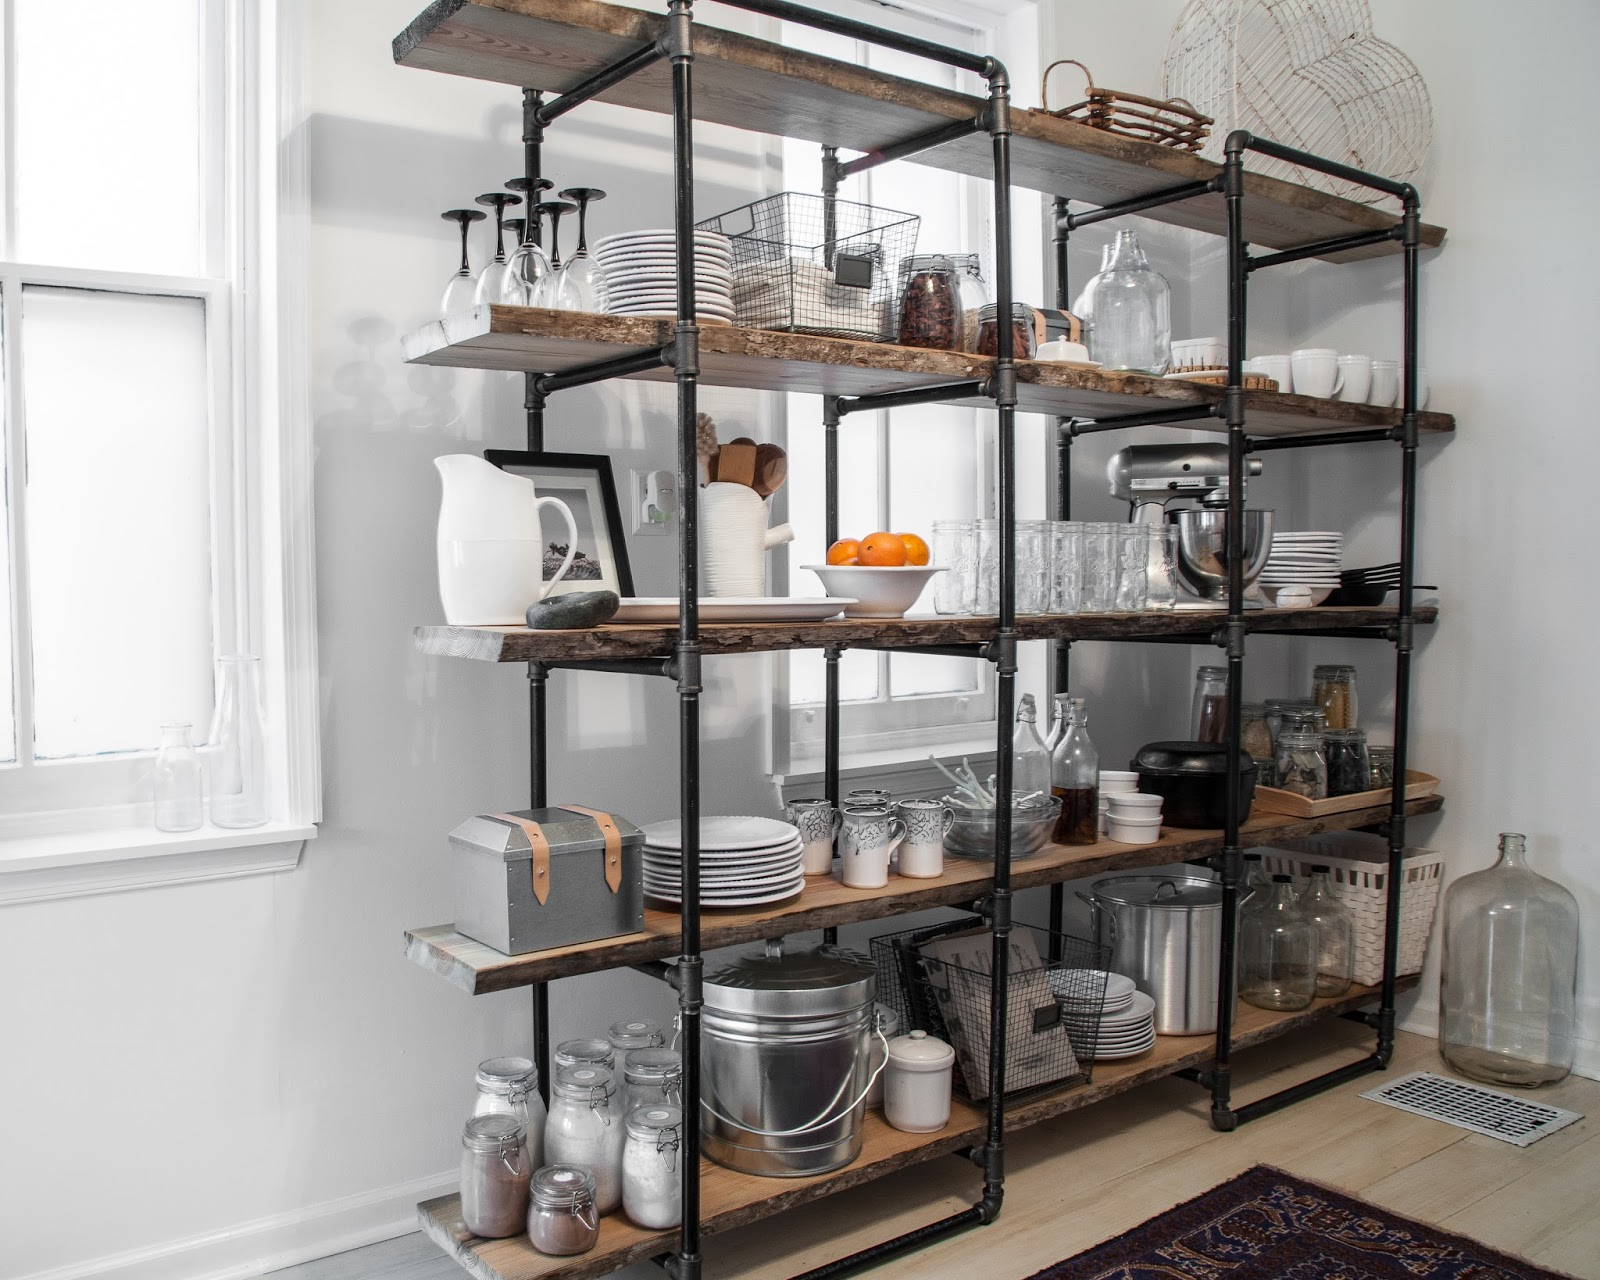 Decorative Industrial Shelving Diy Project How To Build A Freestanding Industrial Shelf